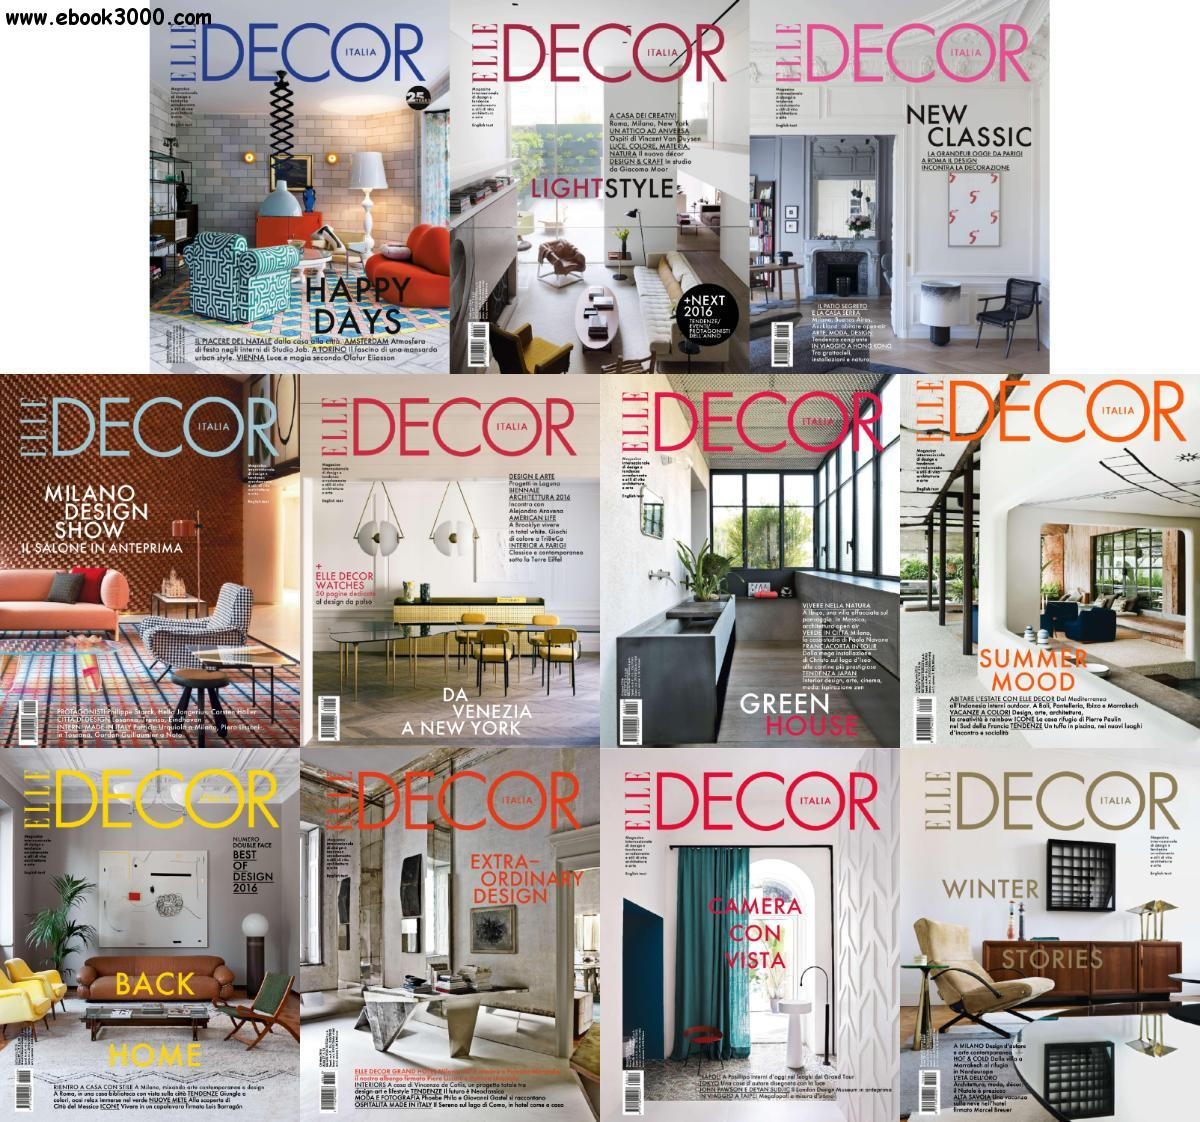 Elle Decor Italia Elle Decor Italia 2016 Full Year Issues Collection Free Ebooks